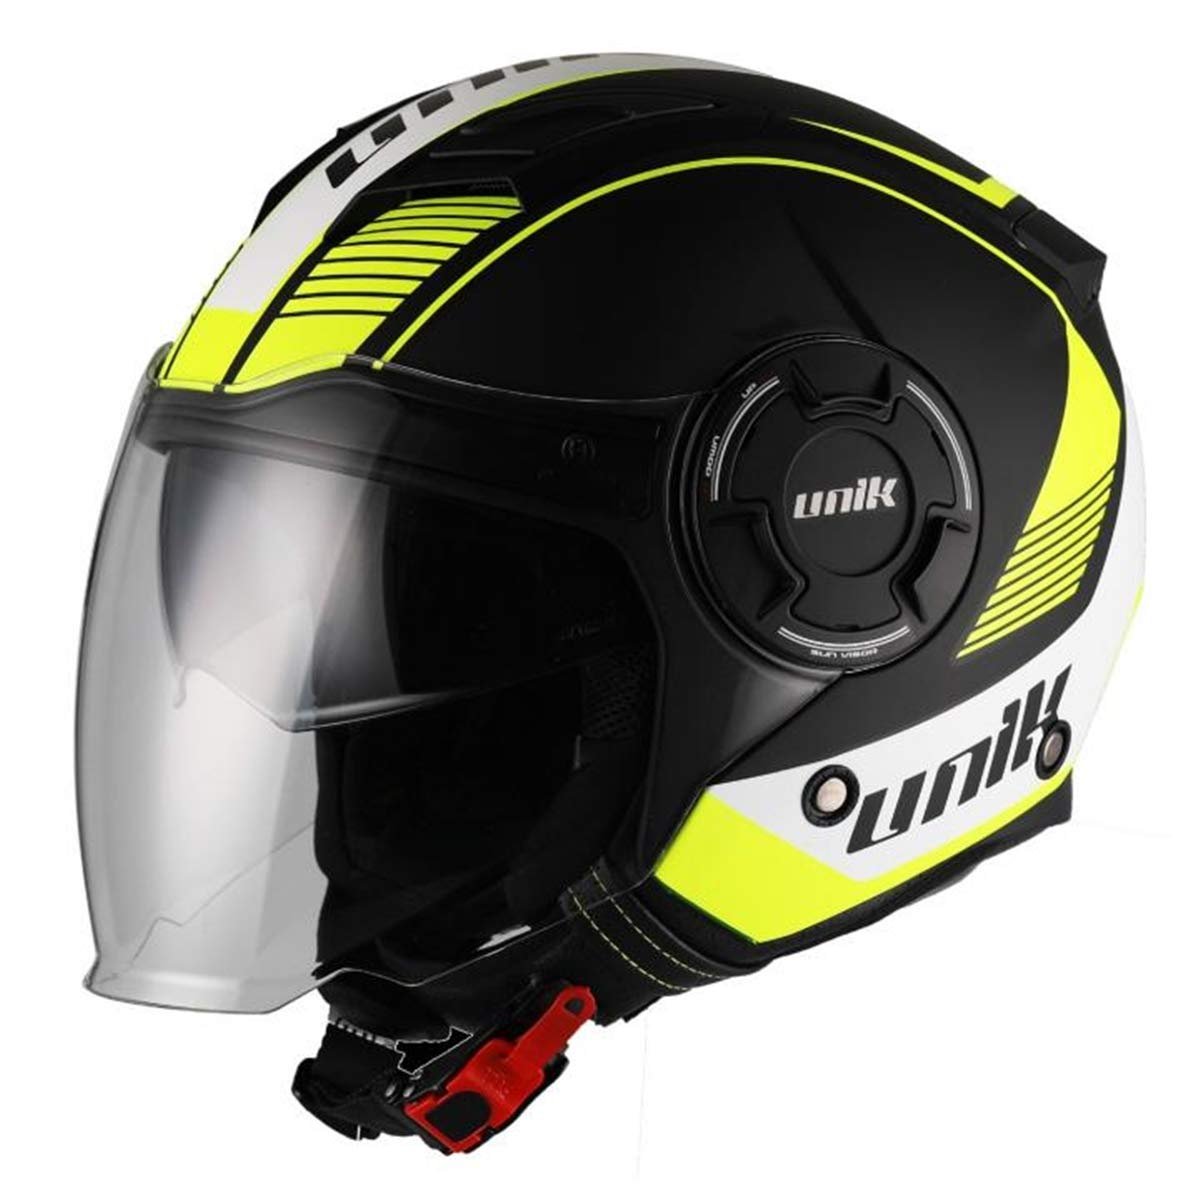 Unik CASCO CJ-11 WOLF (XL): Amazon.es: Coche y moto